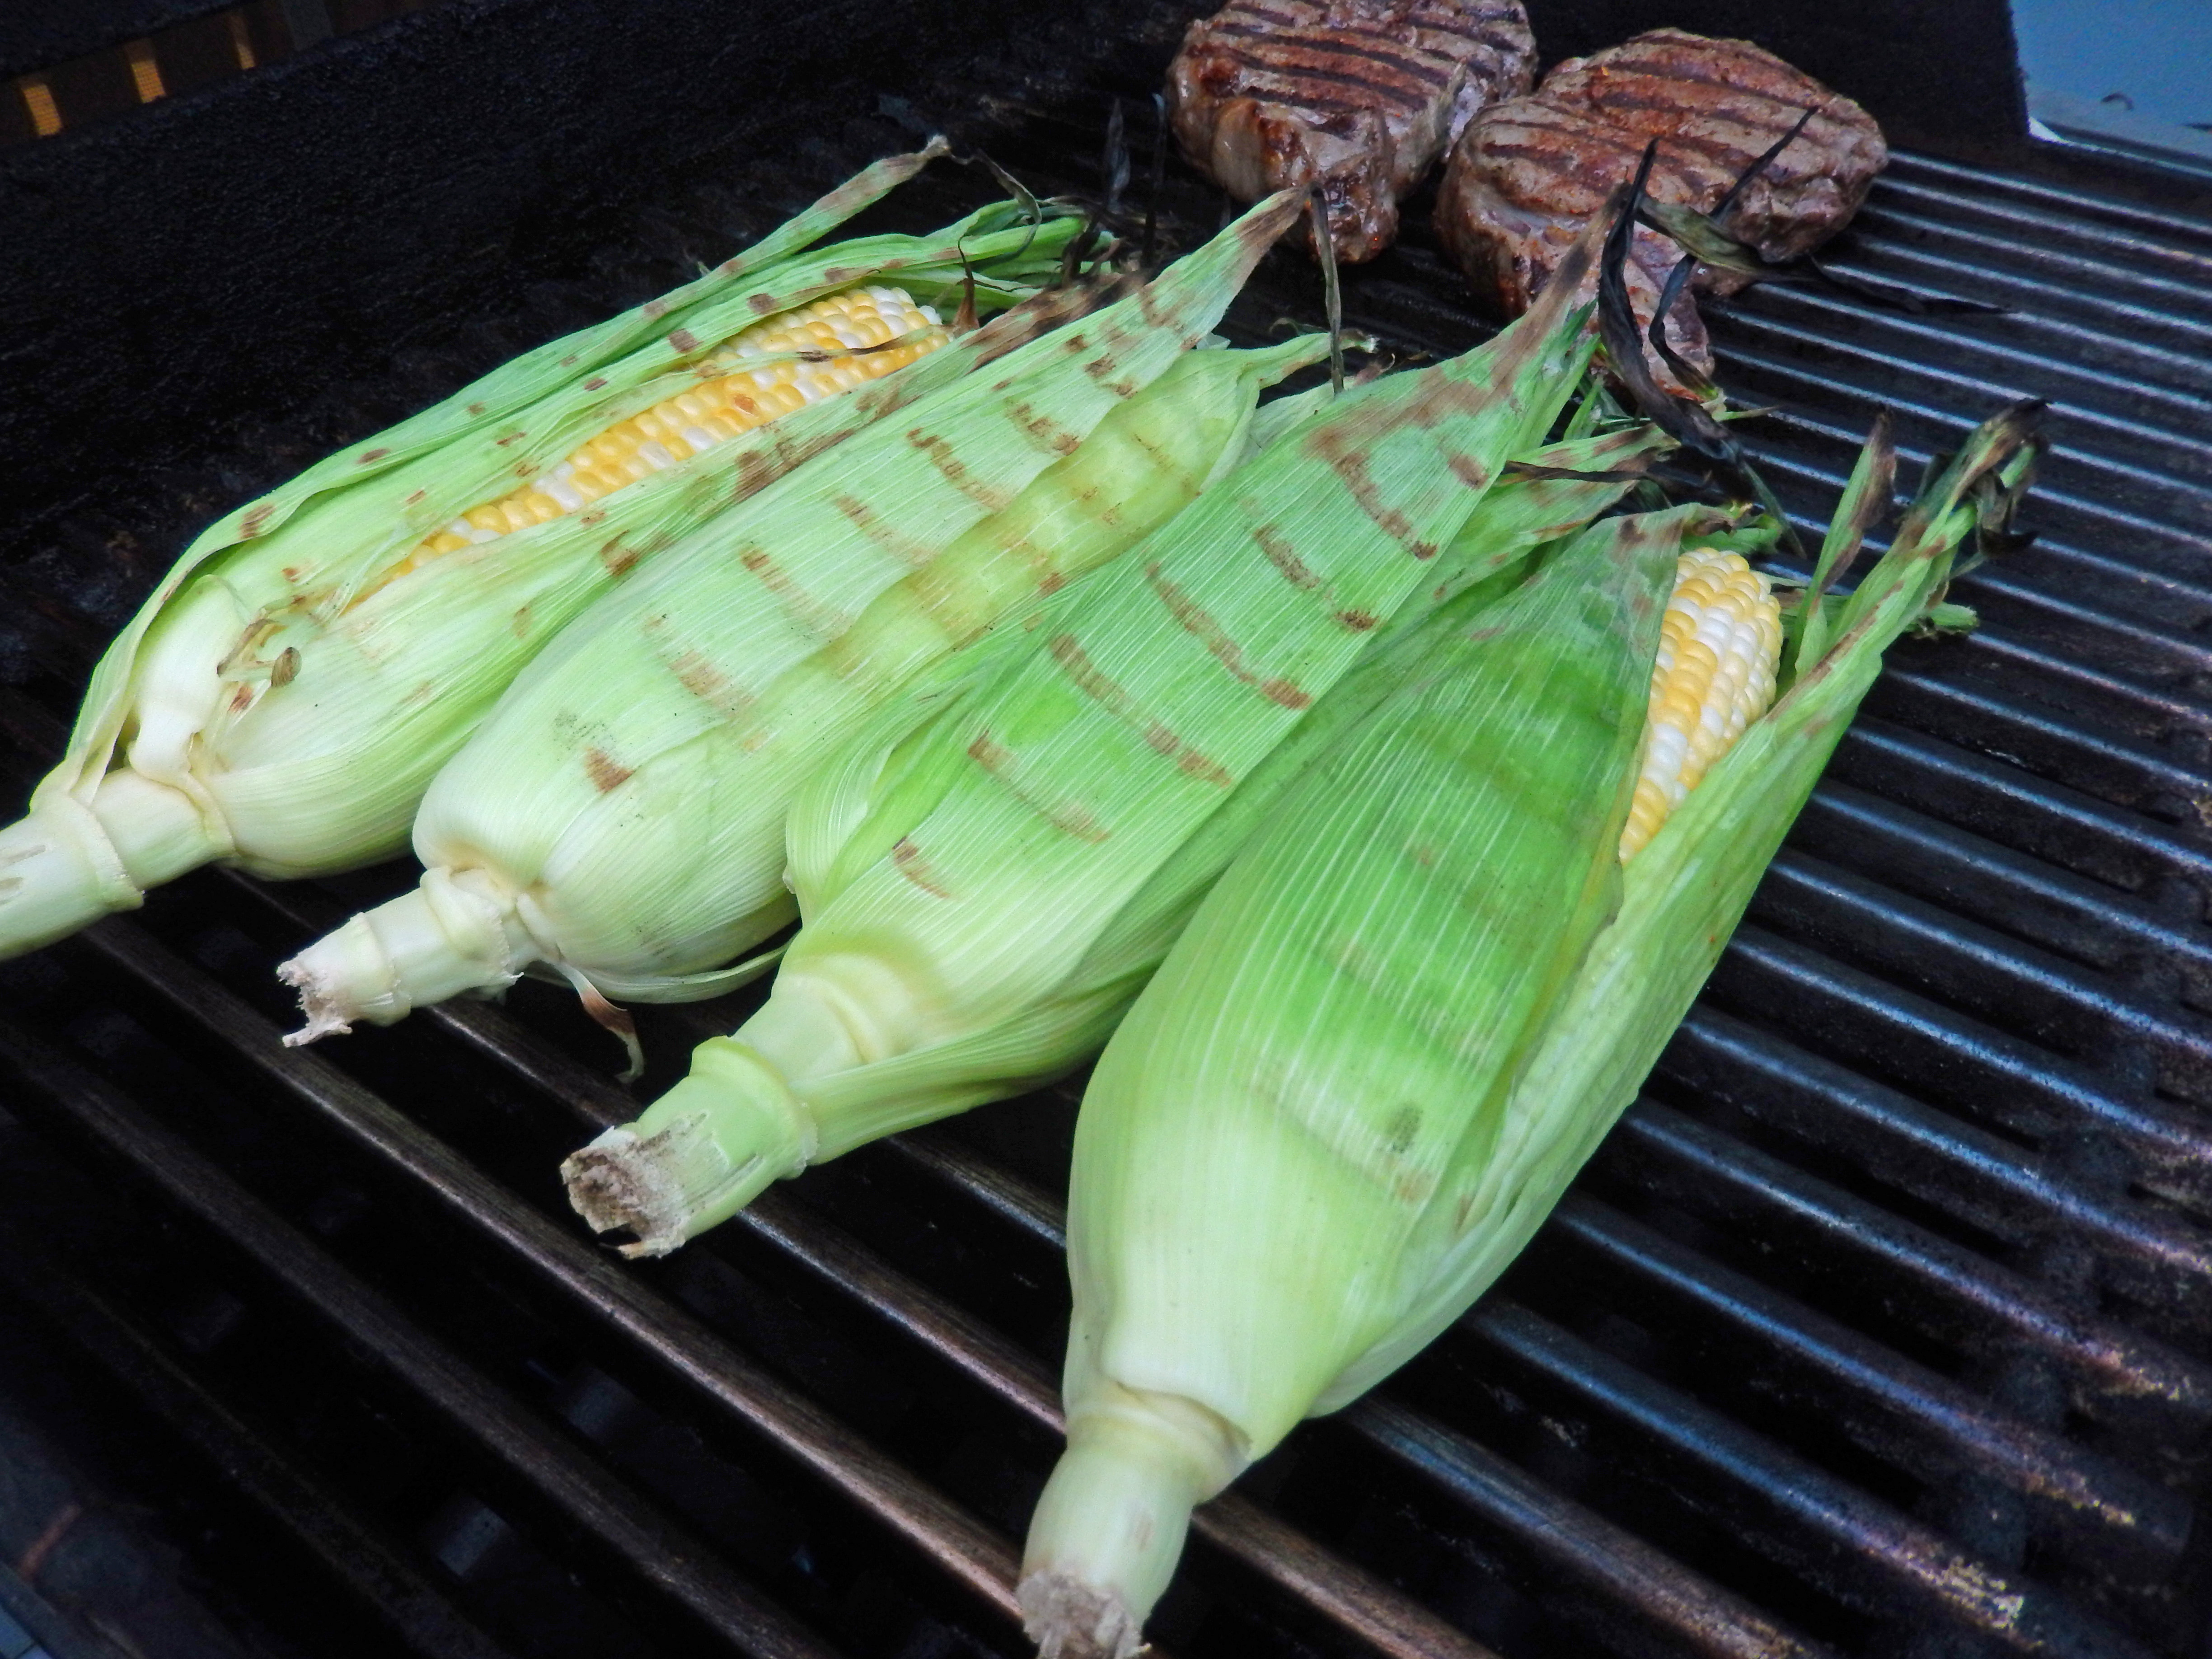 The corn takes about 10 minutes to cook on the grill.